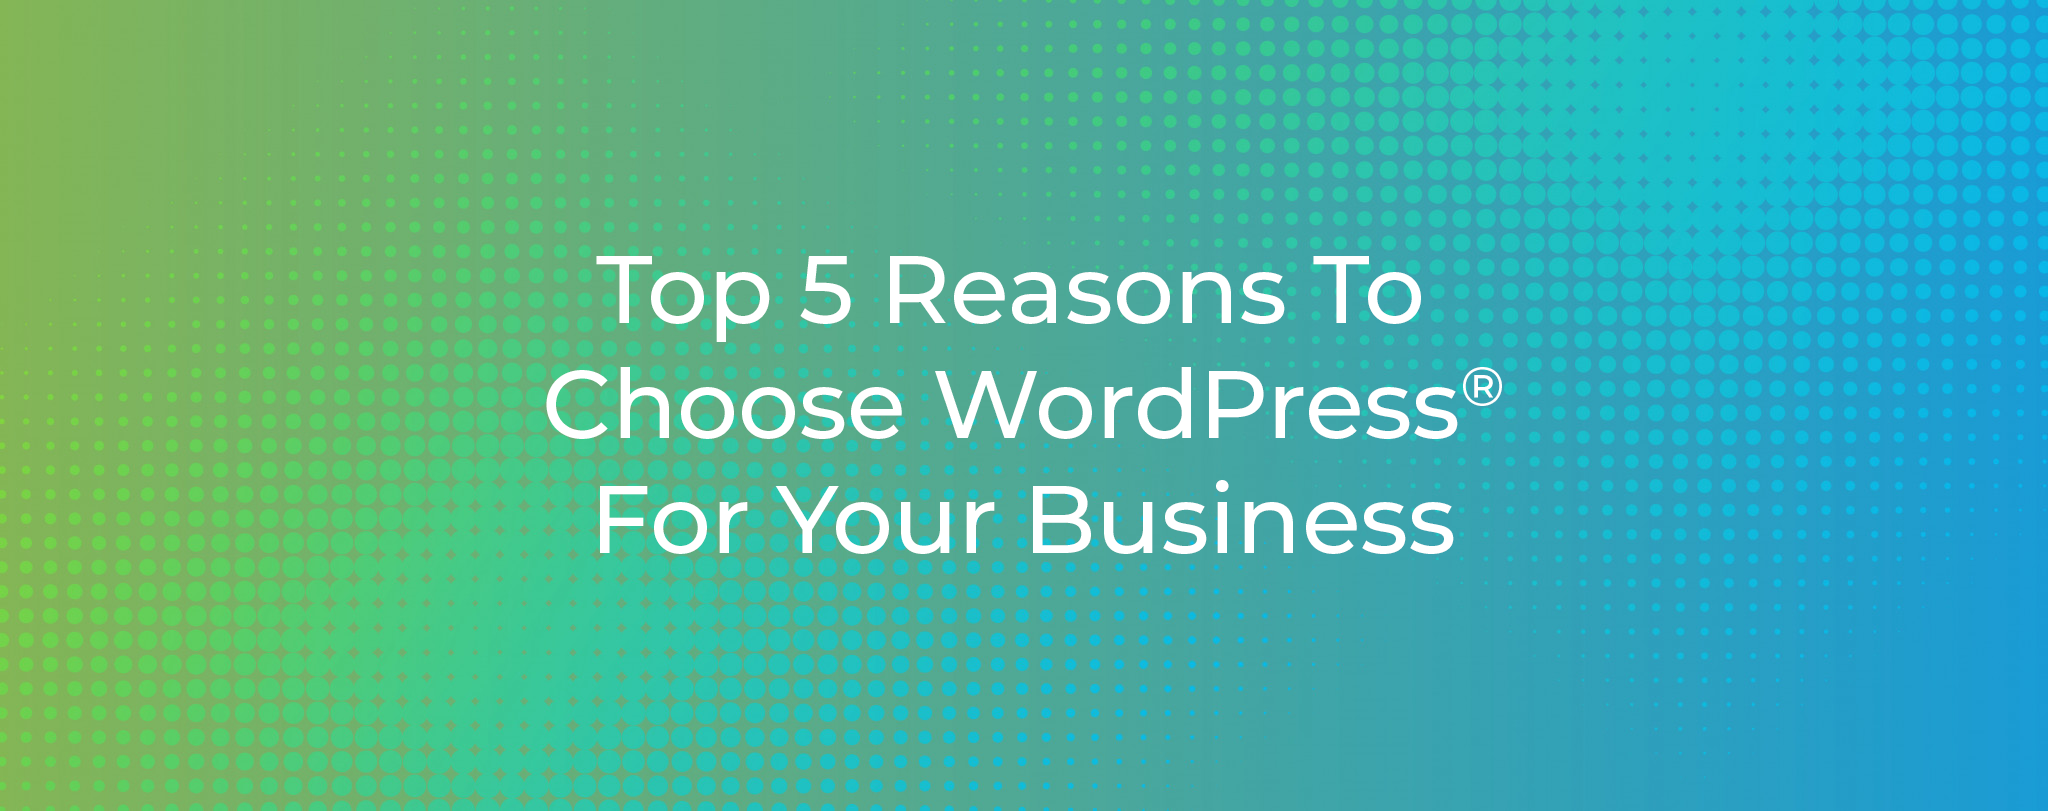 Top 5 Reasons To Choose WordPress For Your Business